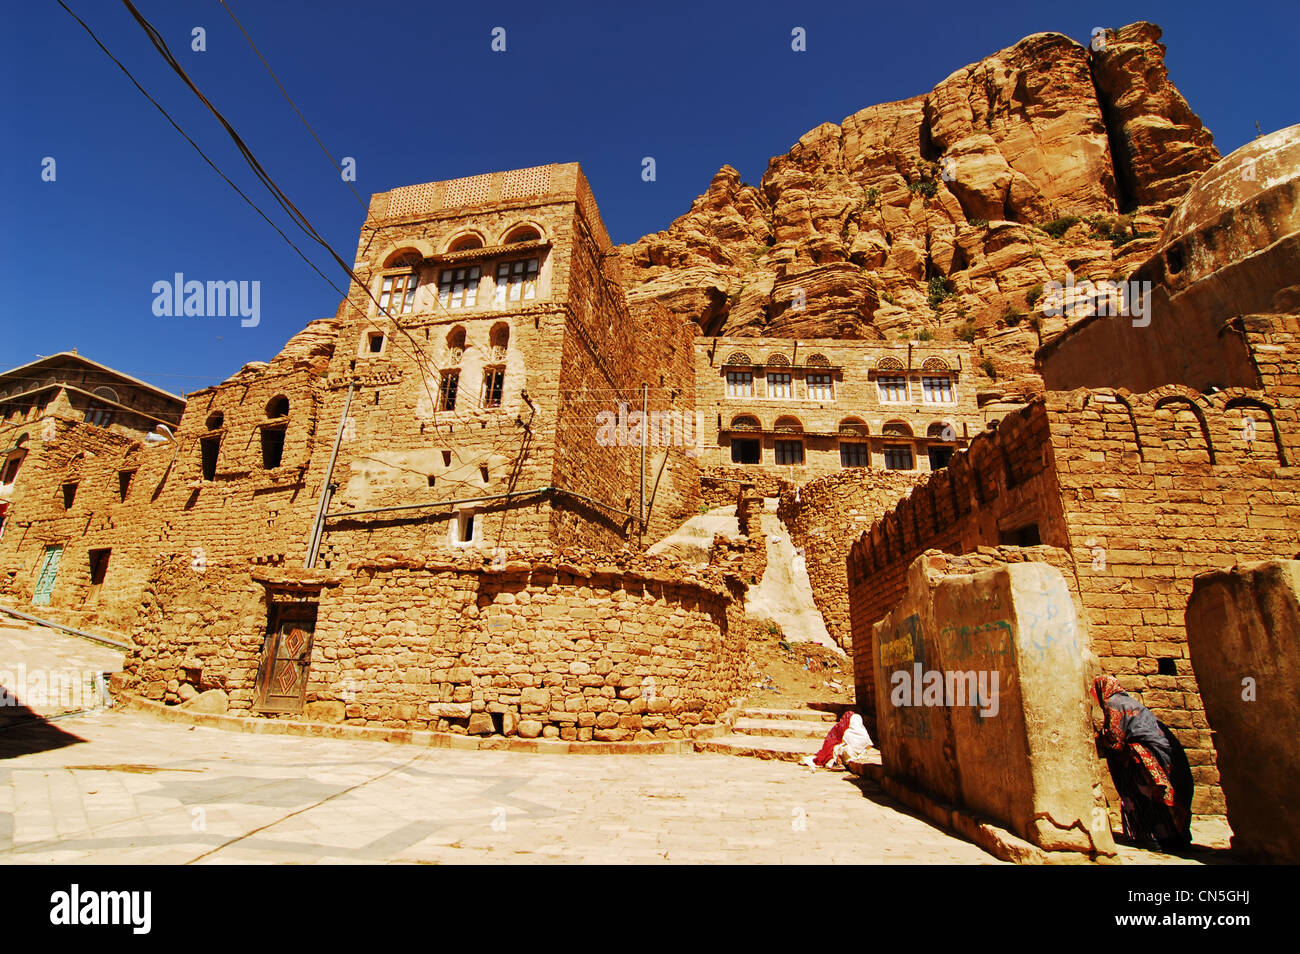 Yemen, Amran Governorate, woman in the historic centre - Stock Image